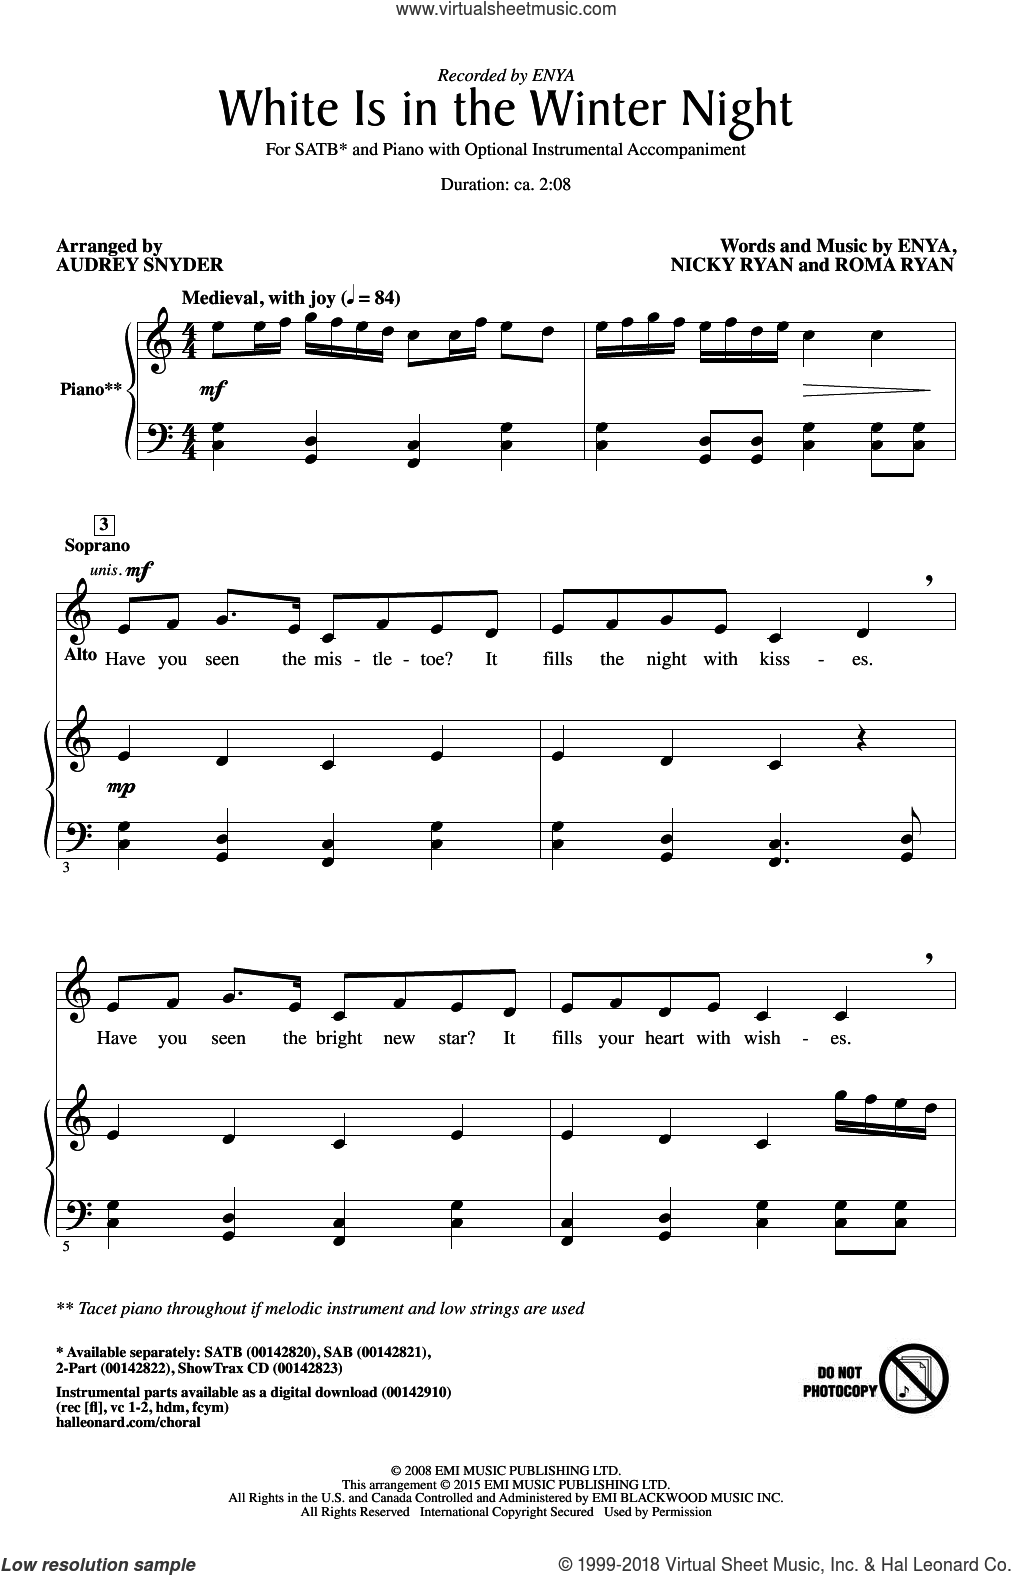 White Is In The Winter Night sheet music for choir (SATB) by Audrey Snyder, Enya, Nicky Ryan and Roma Ryan. Score Image Preview.